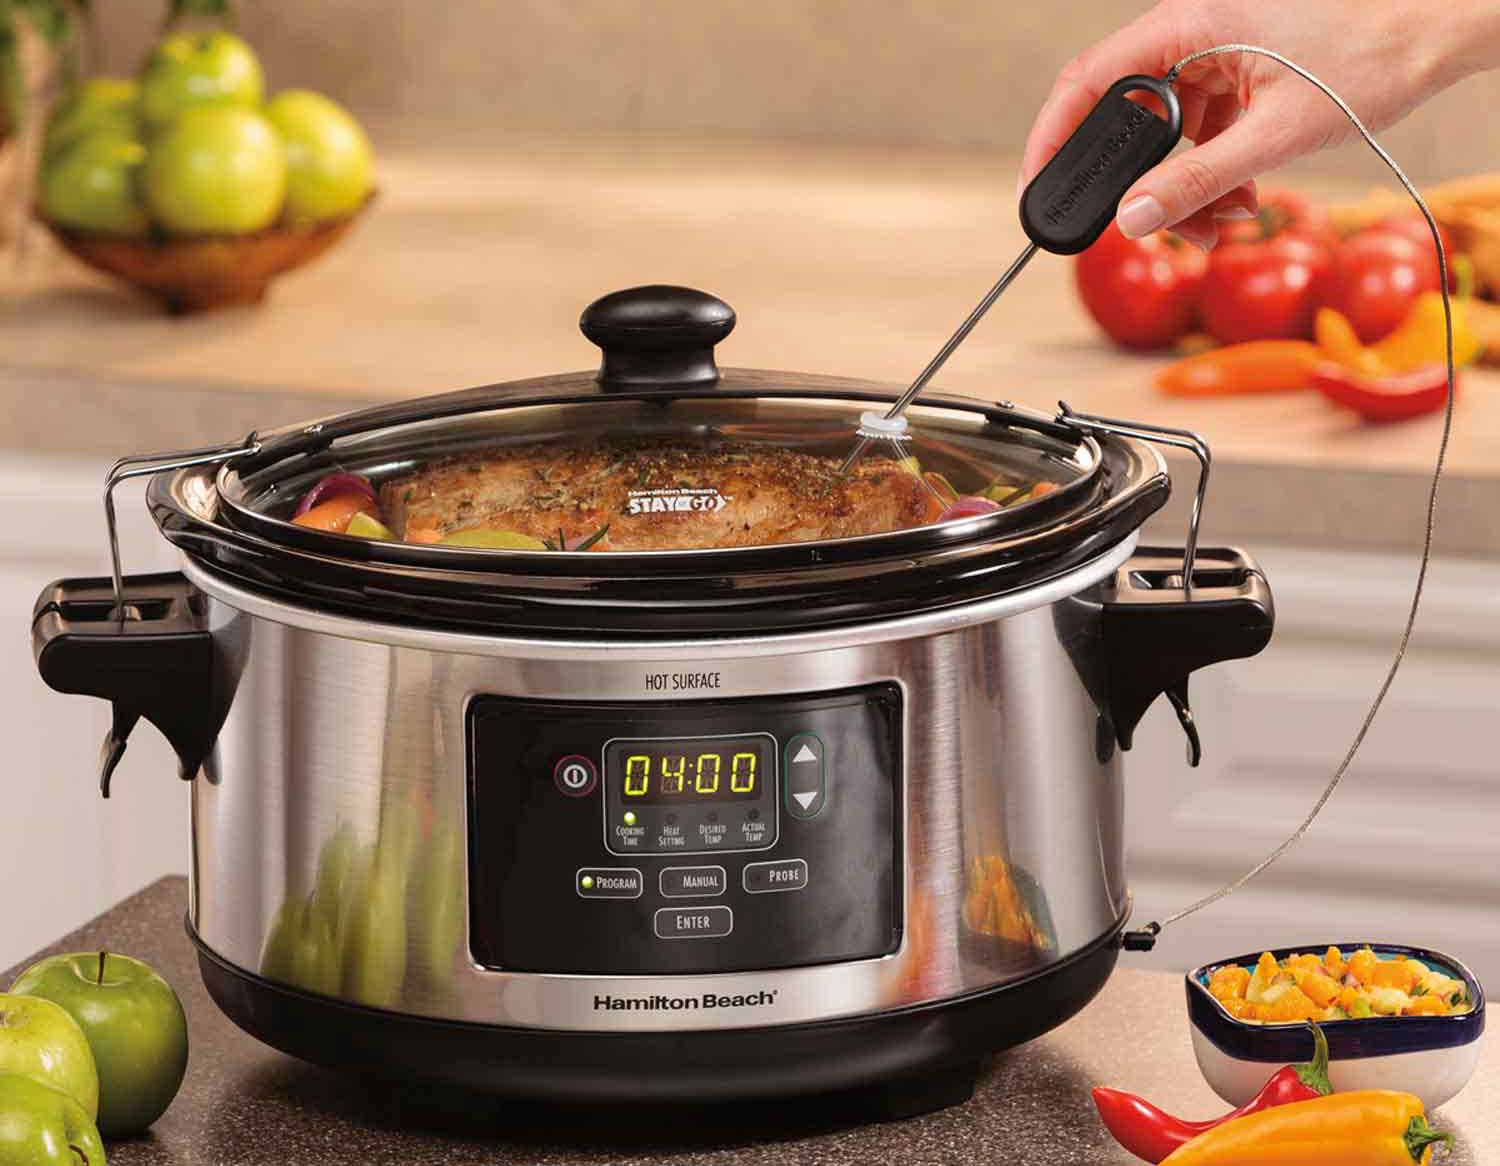 slow cooker with temperature probe on a counter